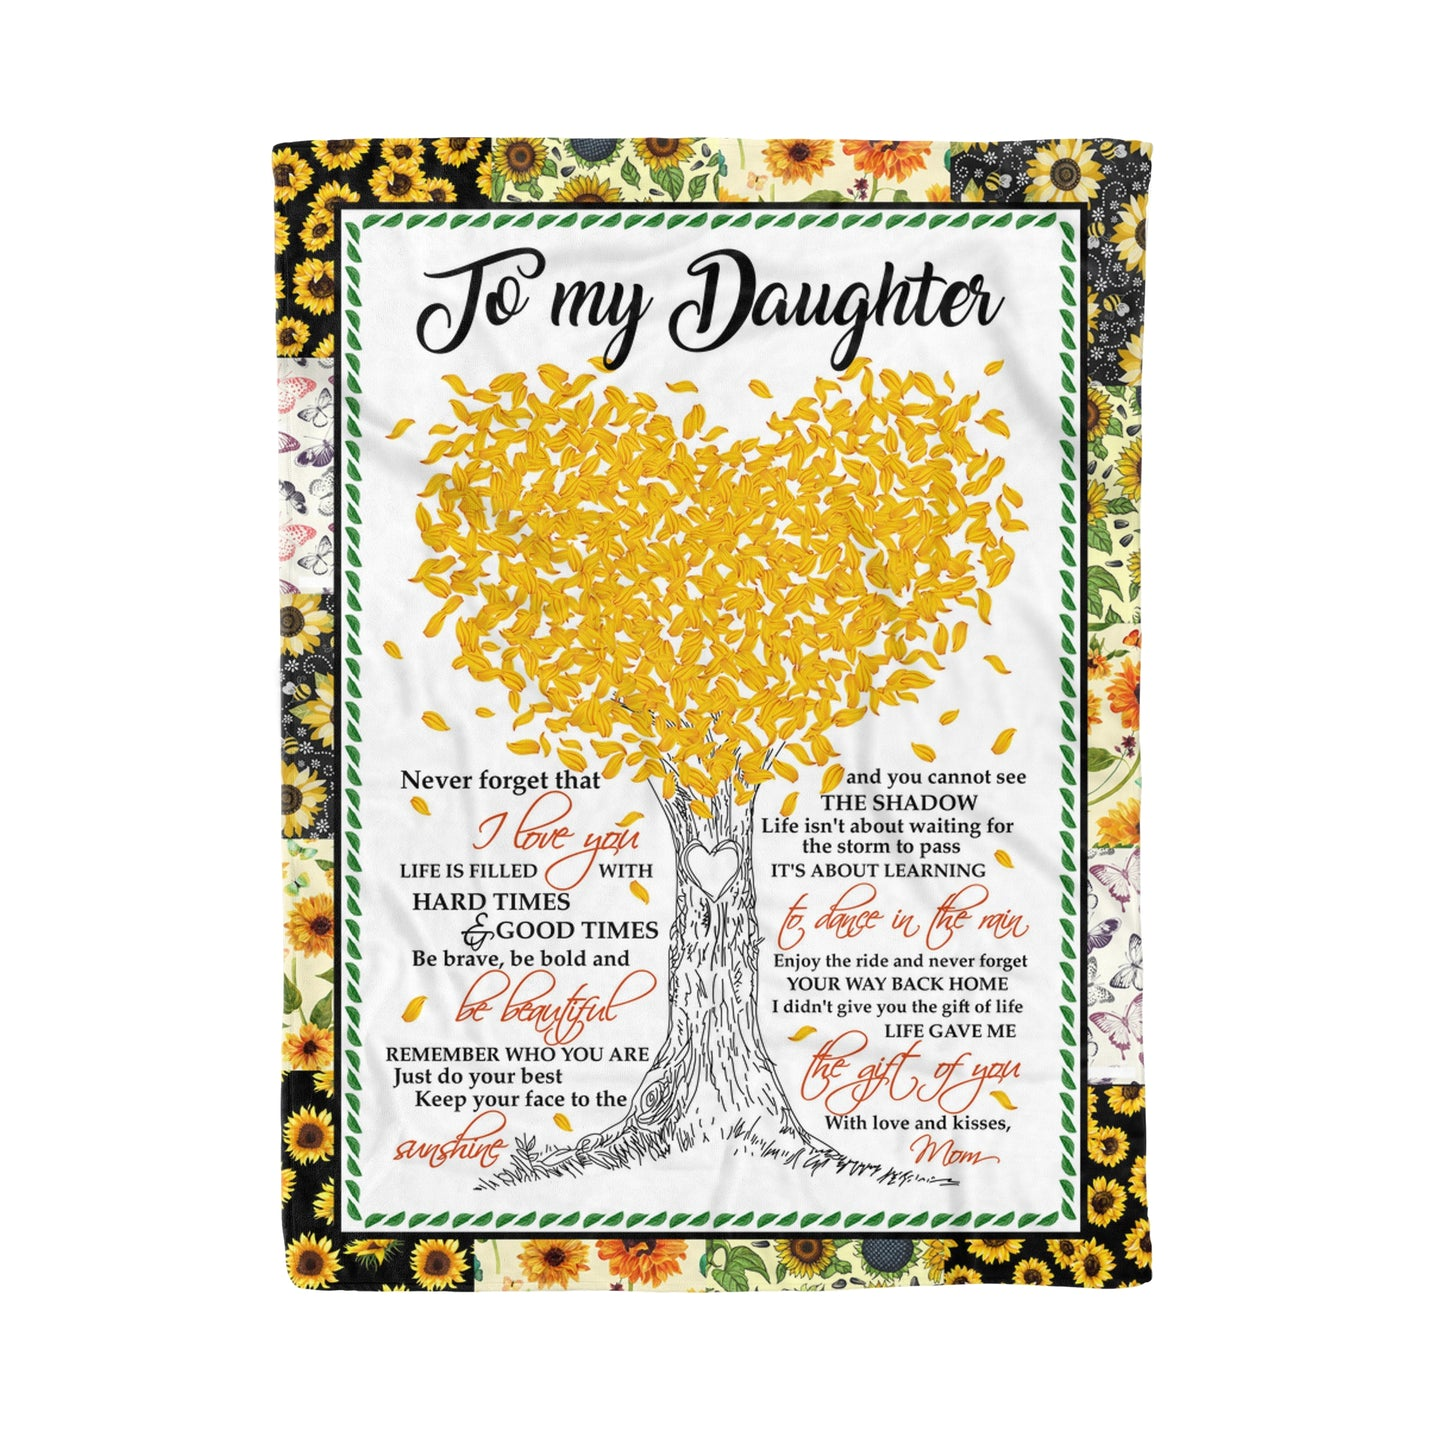 Daughter From Mom Blankets Life Gave Me The Gift Of You Sunflower Themed Family Quote - Fleece Blanket Home Small (30x40in)